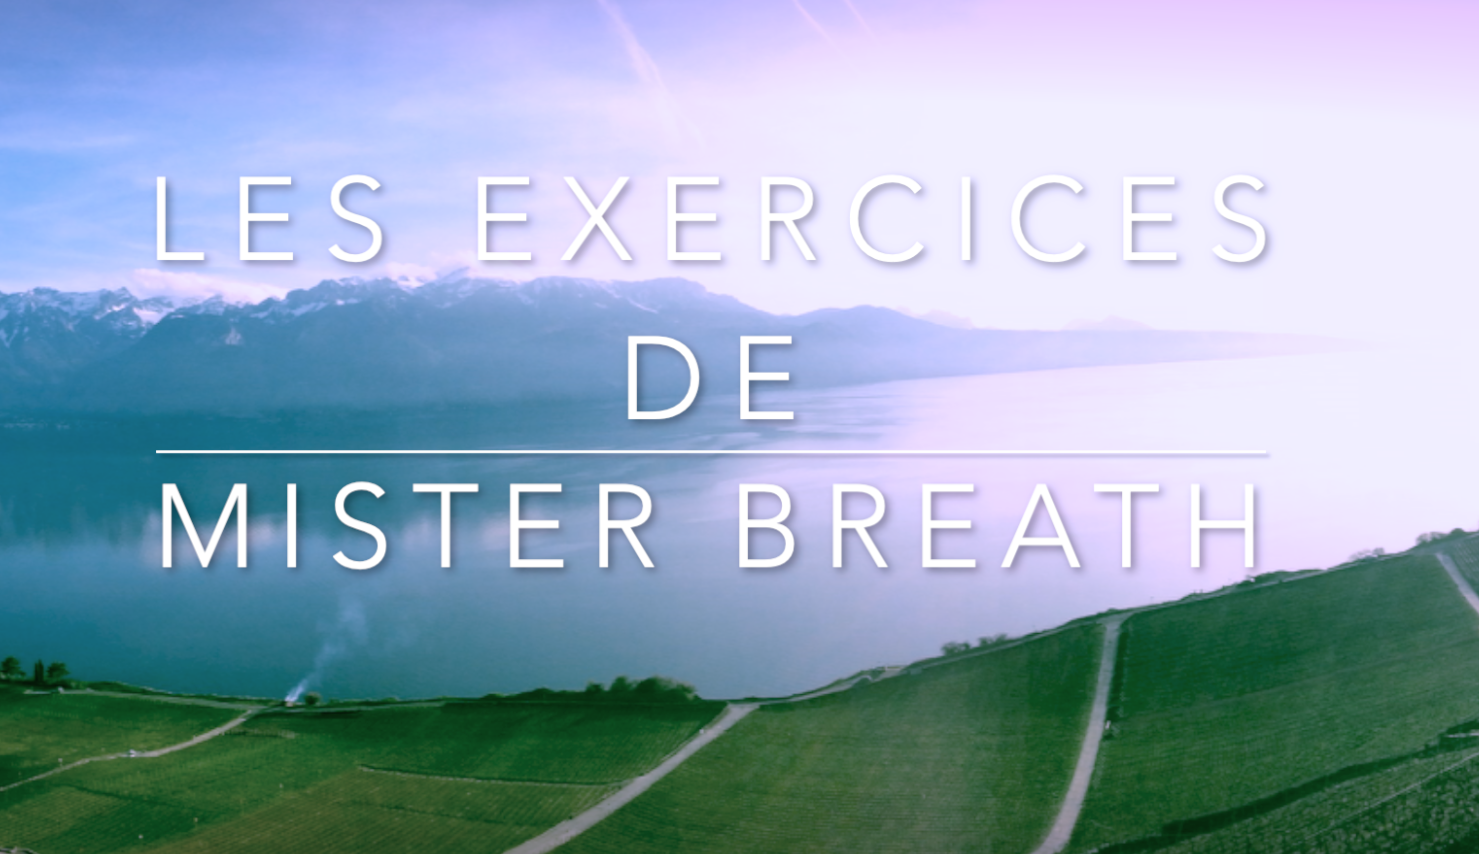 Les exercices videos de MIster Breath